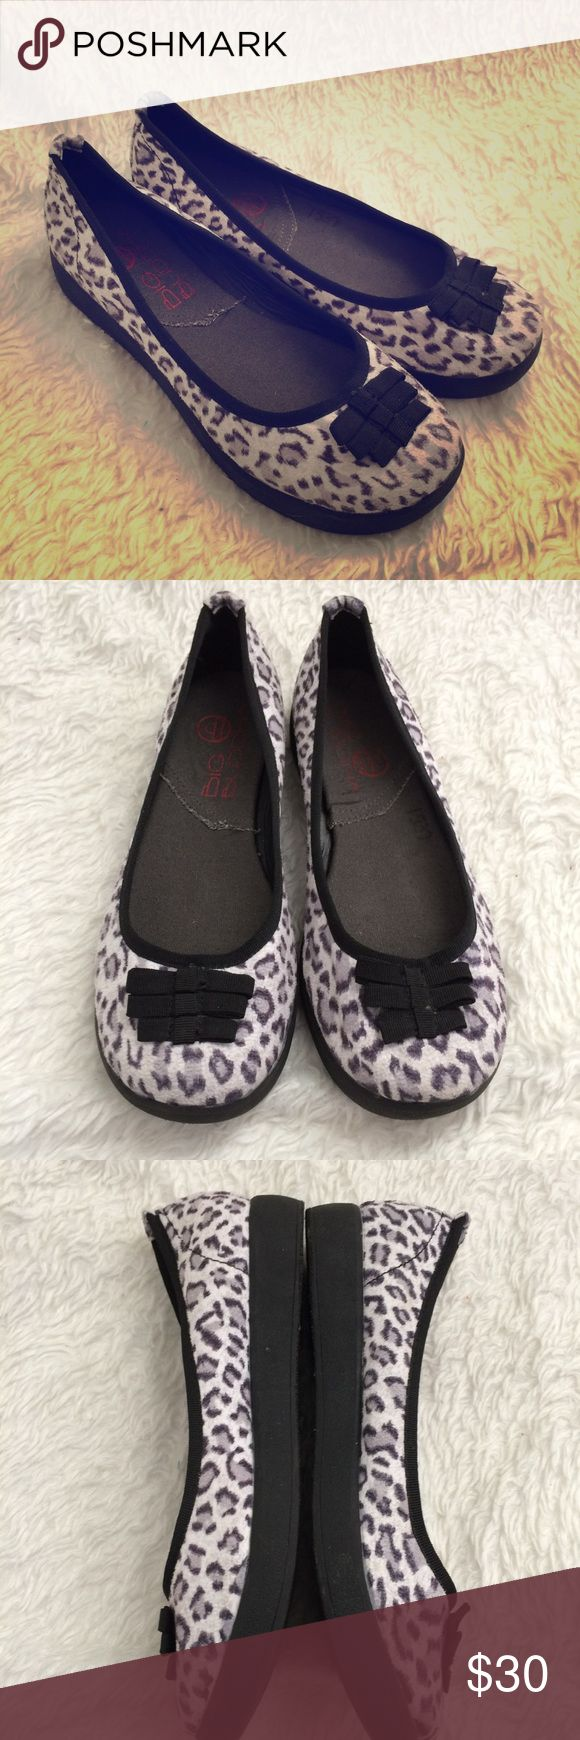 BIG BUDDHA ballet flat leopard SZ 8 like new Display shoe from Big Buddha, style is called Betty. Cute leopard print ballet flat with slight platform. Fabric upper. Size 8. Sbx8 Big Buddha Shoes Platforms